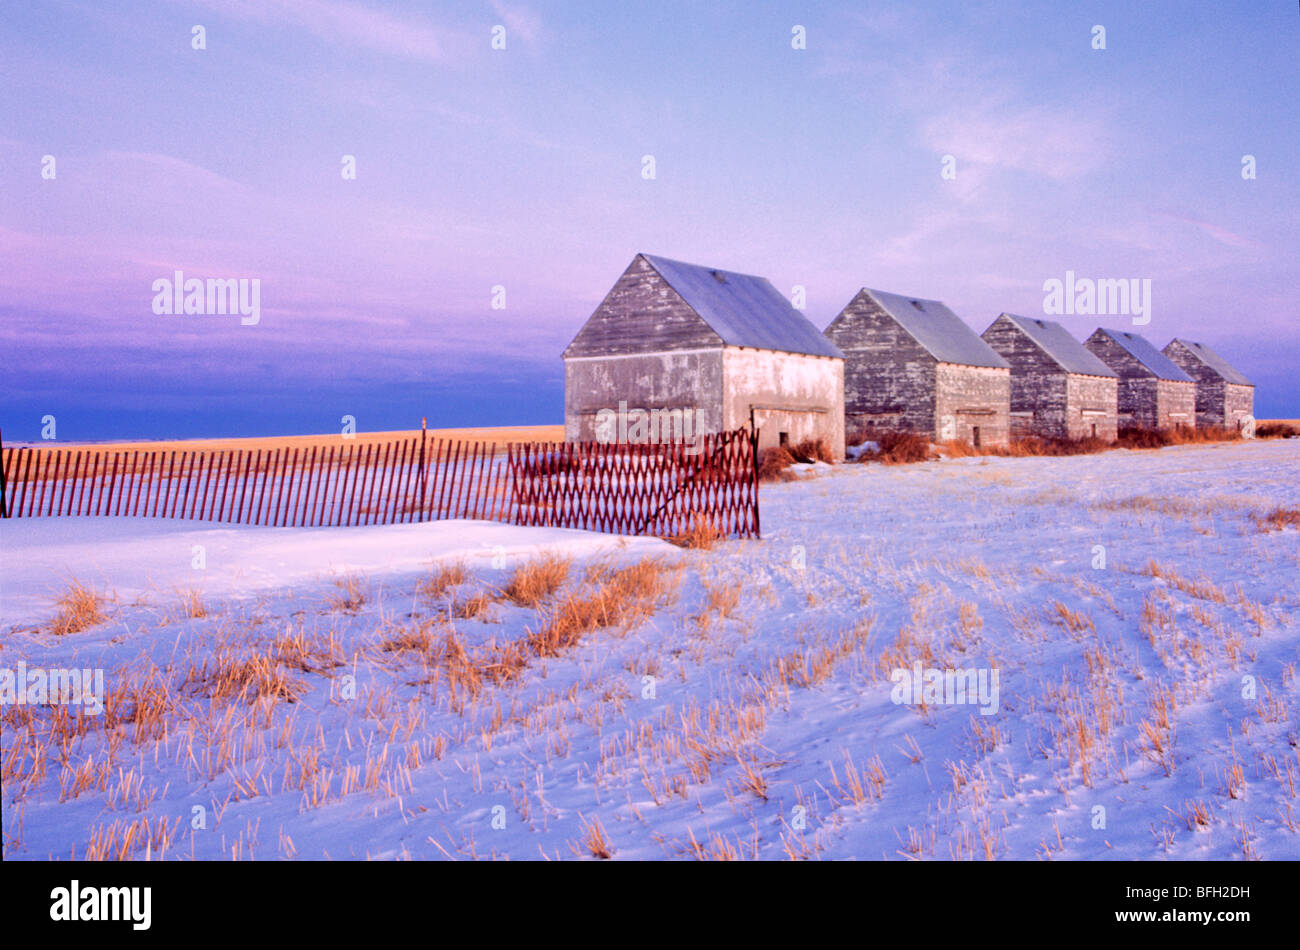 Barns on a snowcapped landscape. Beseker, Alberta, Canada - Stock Image